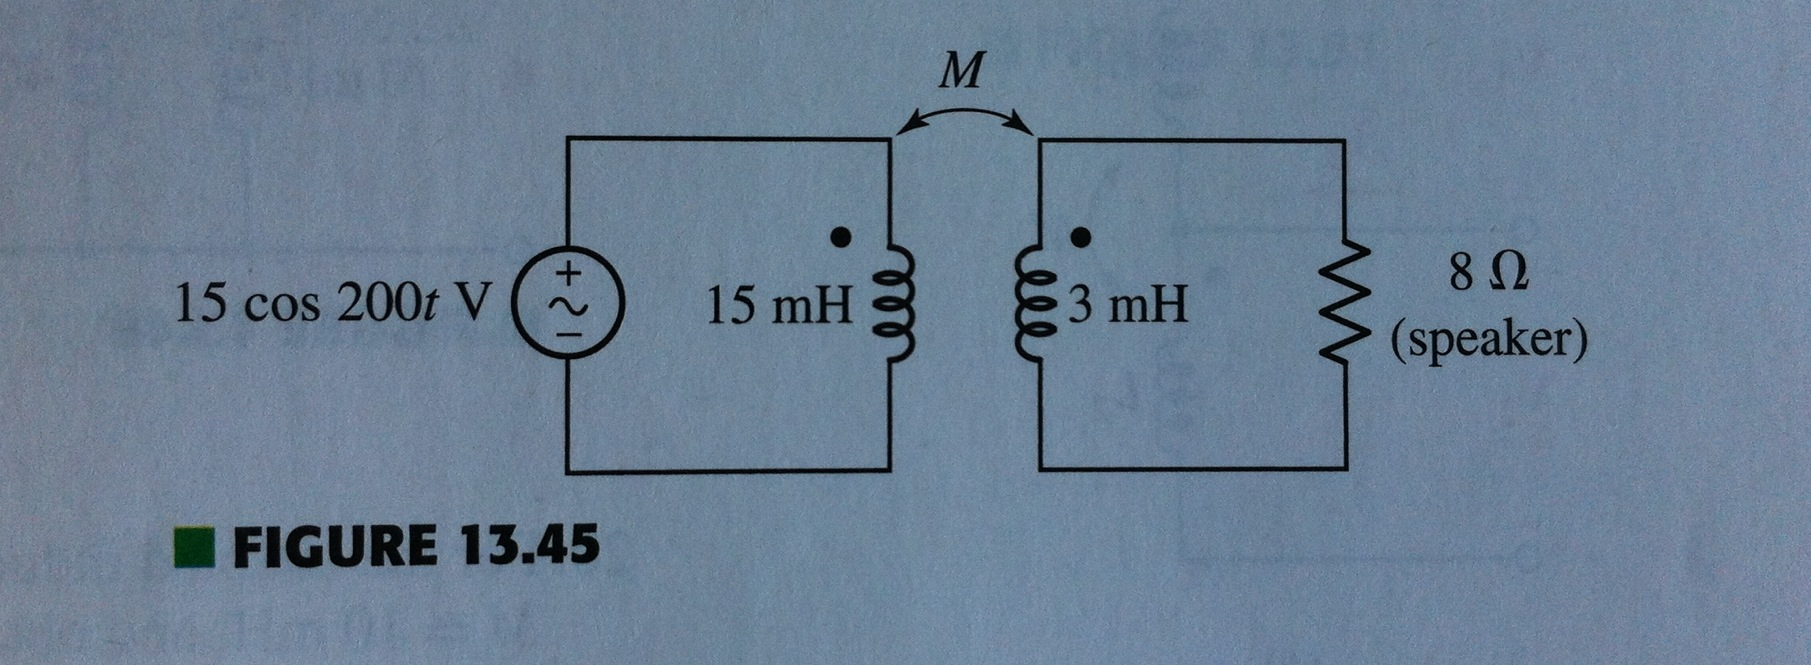 The circuit of Fig. 13.45 is designed to drive a s